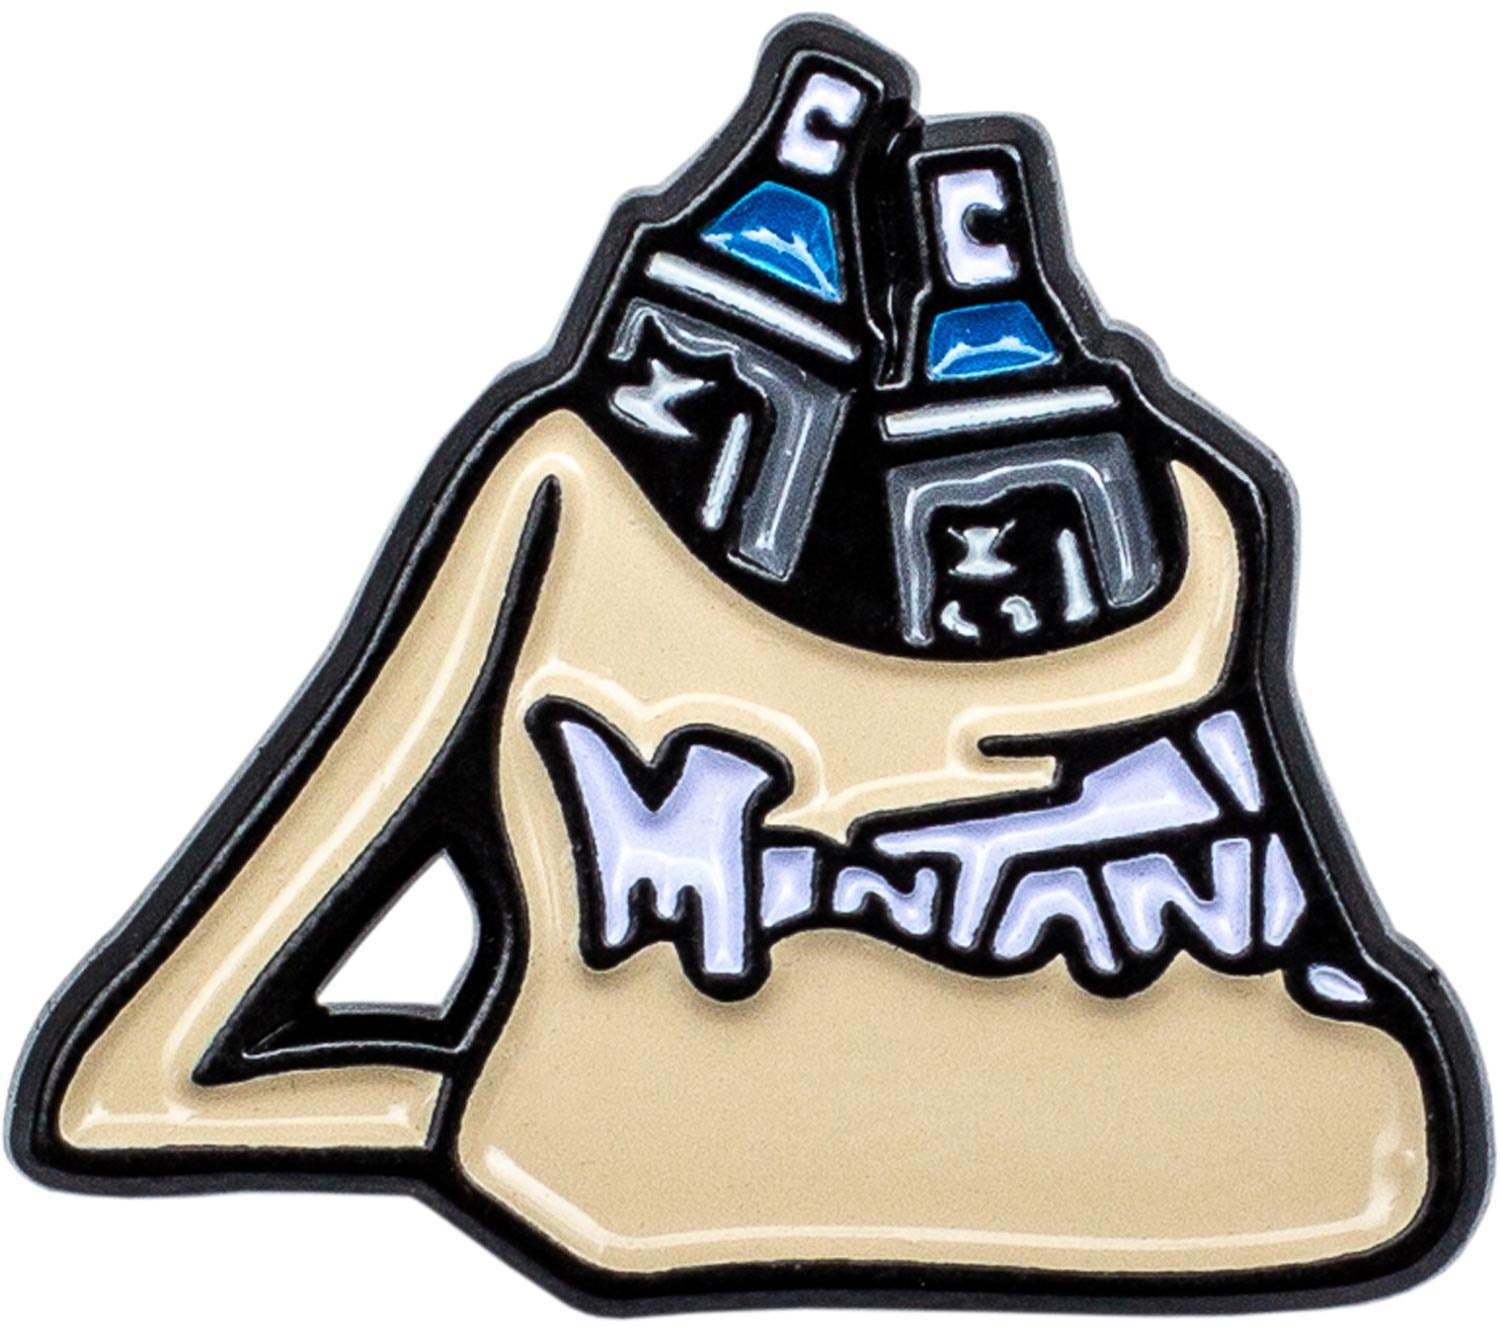 Montana Montana HIT & RUN Pin-Set by 45RPM